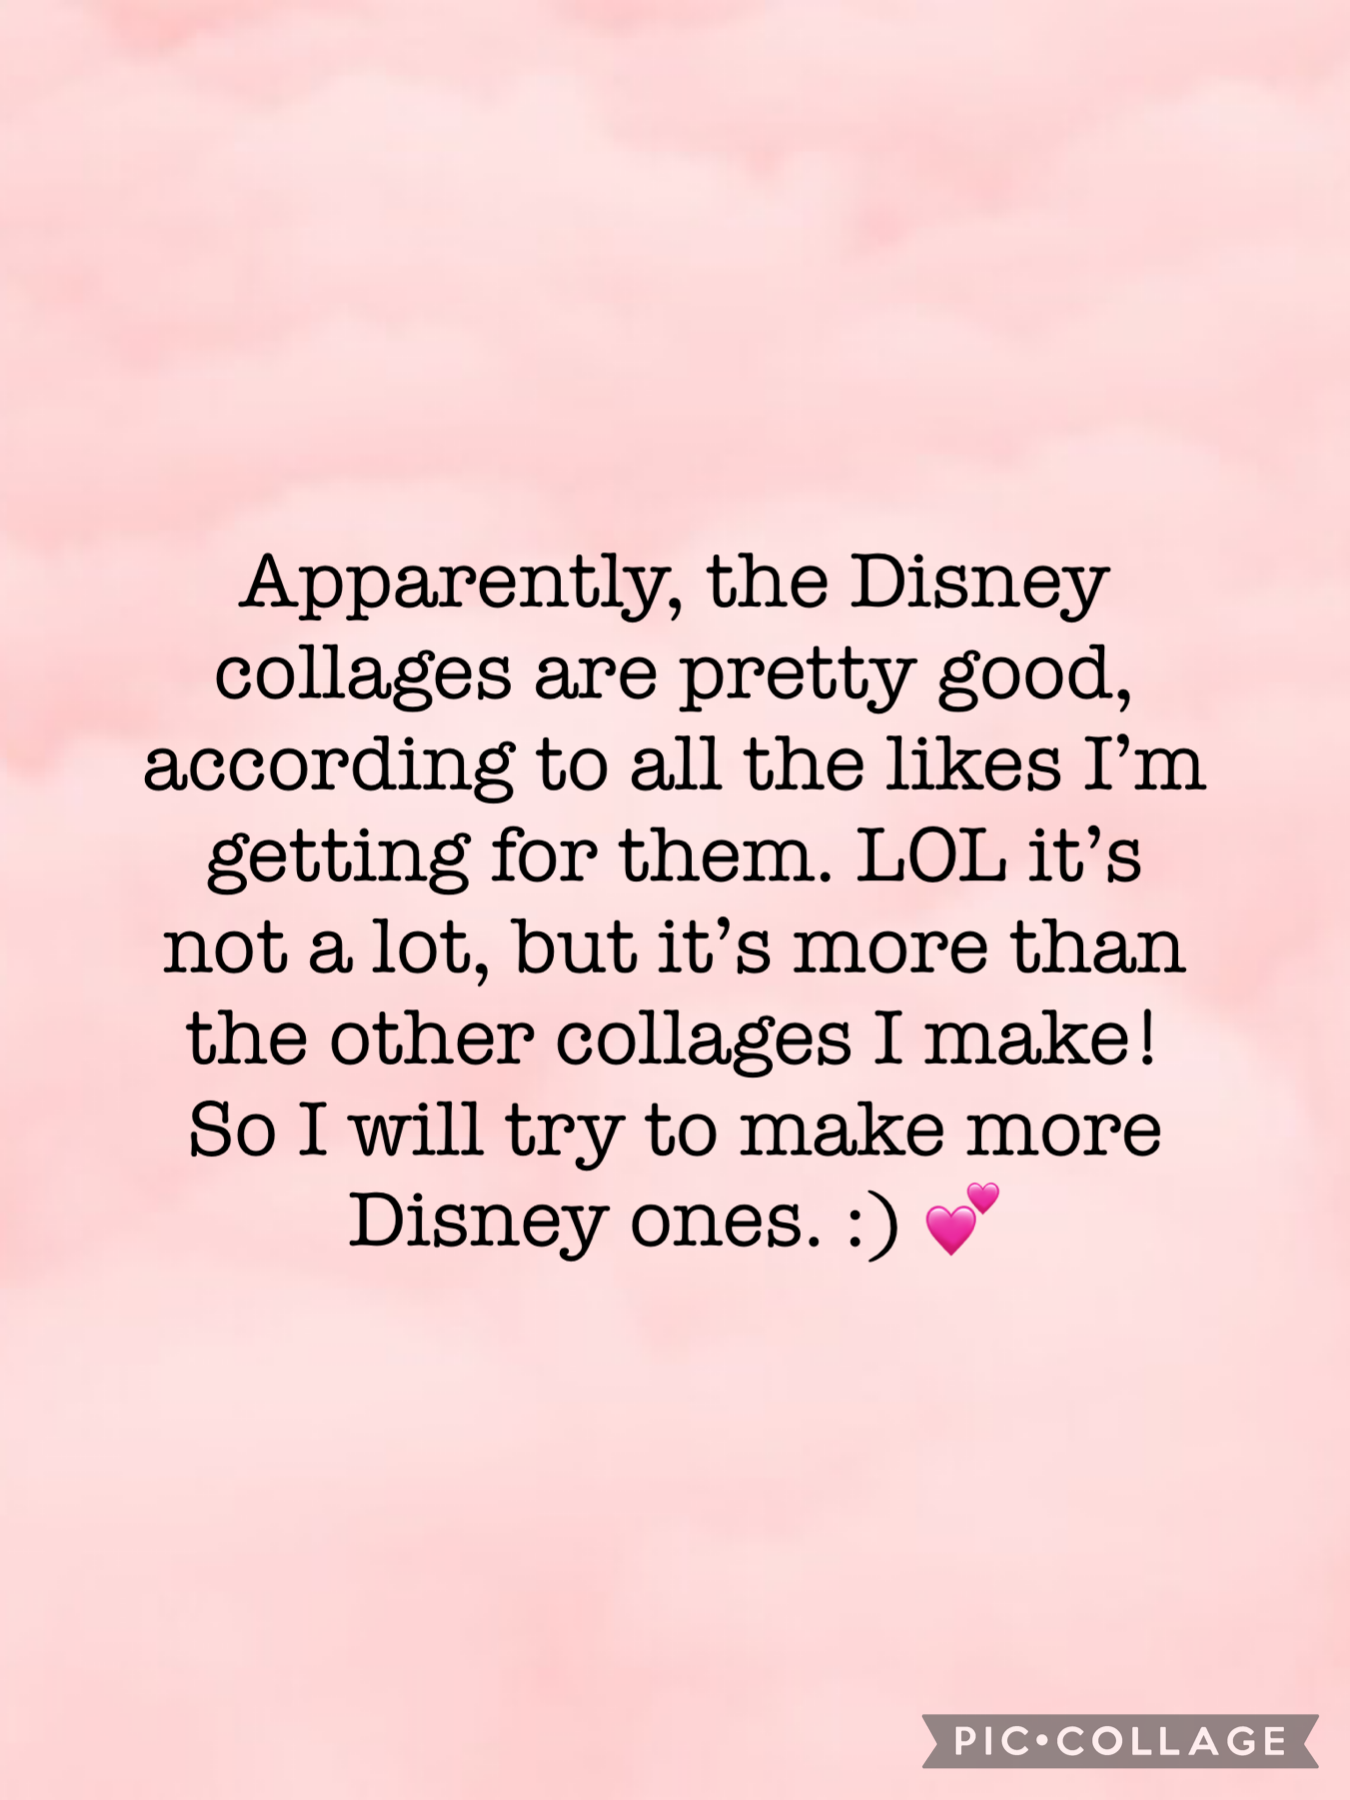 Disney!!! Coming right up!